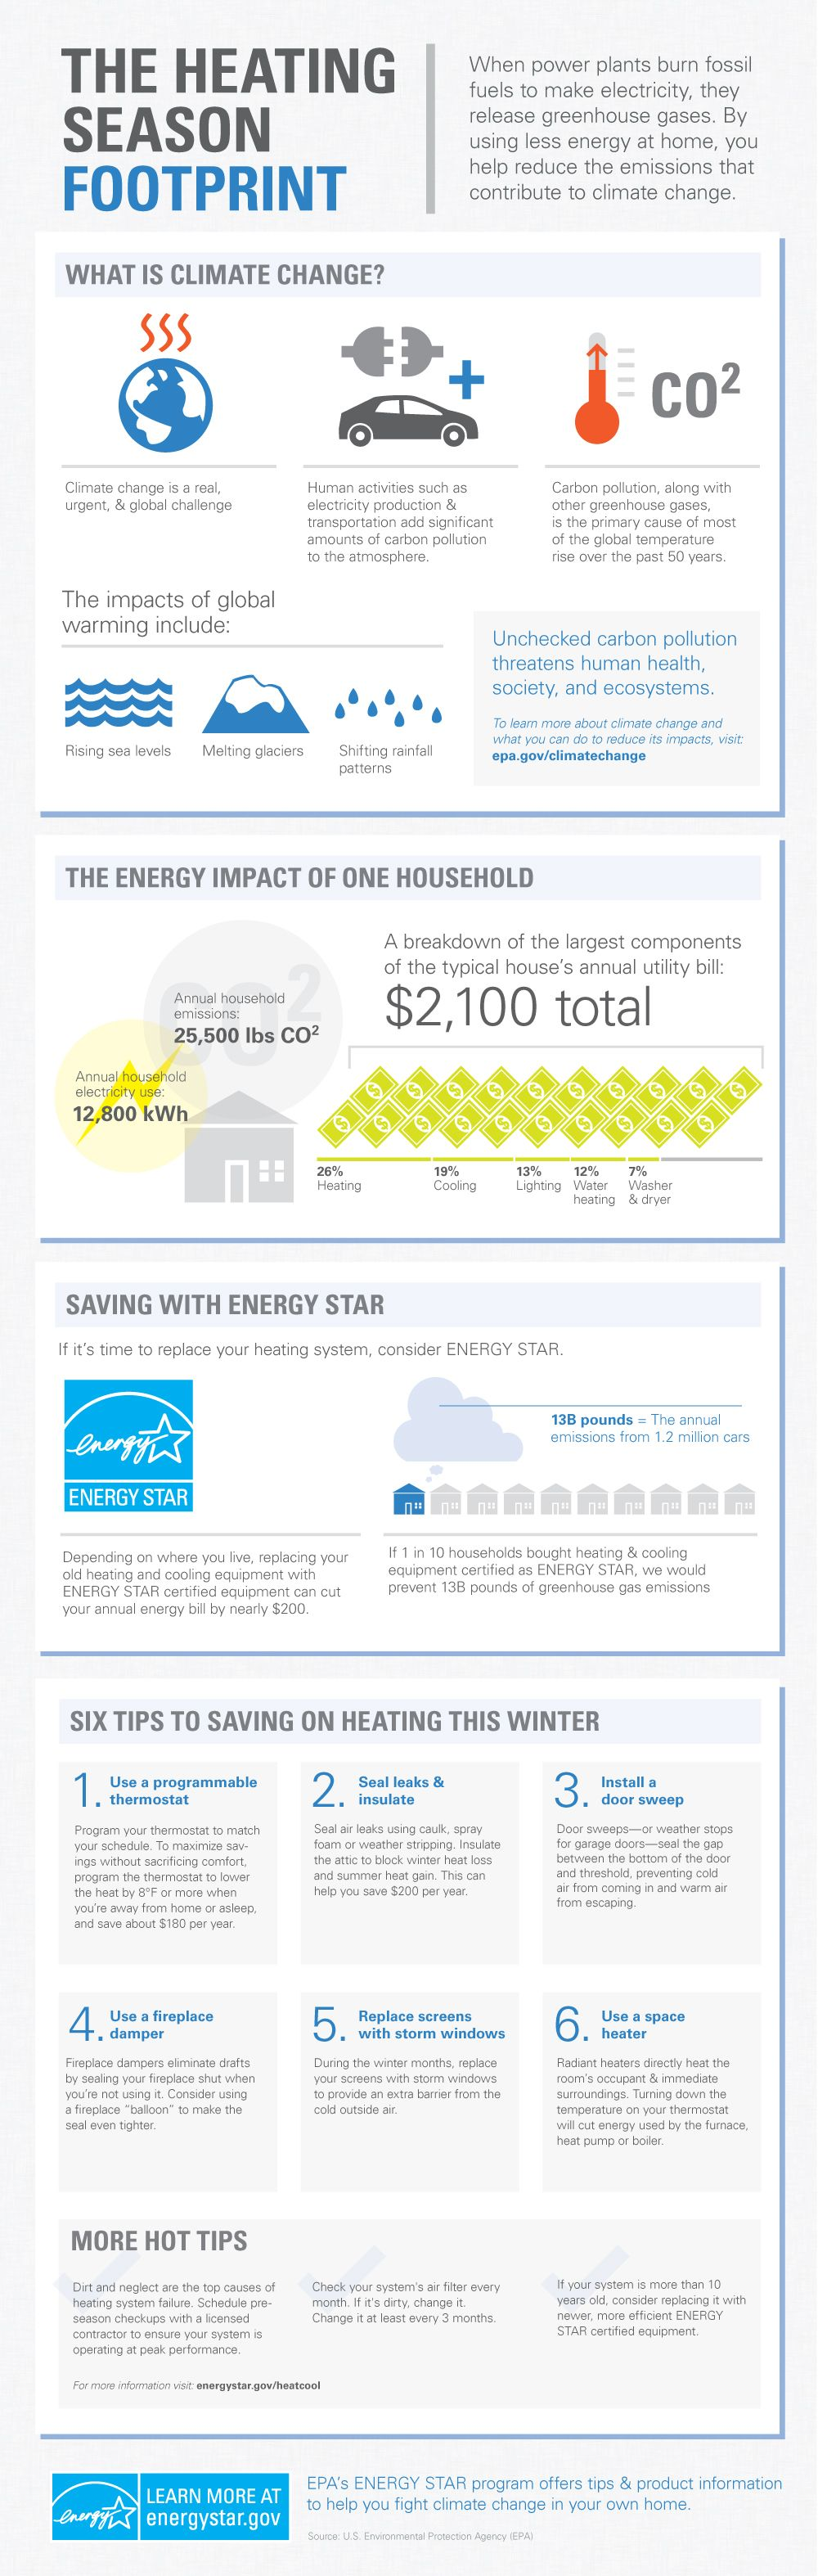 The Heating Season Footprint Infographic Infographic What Is